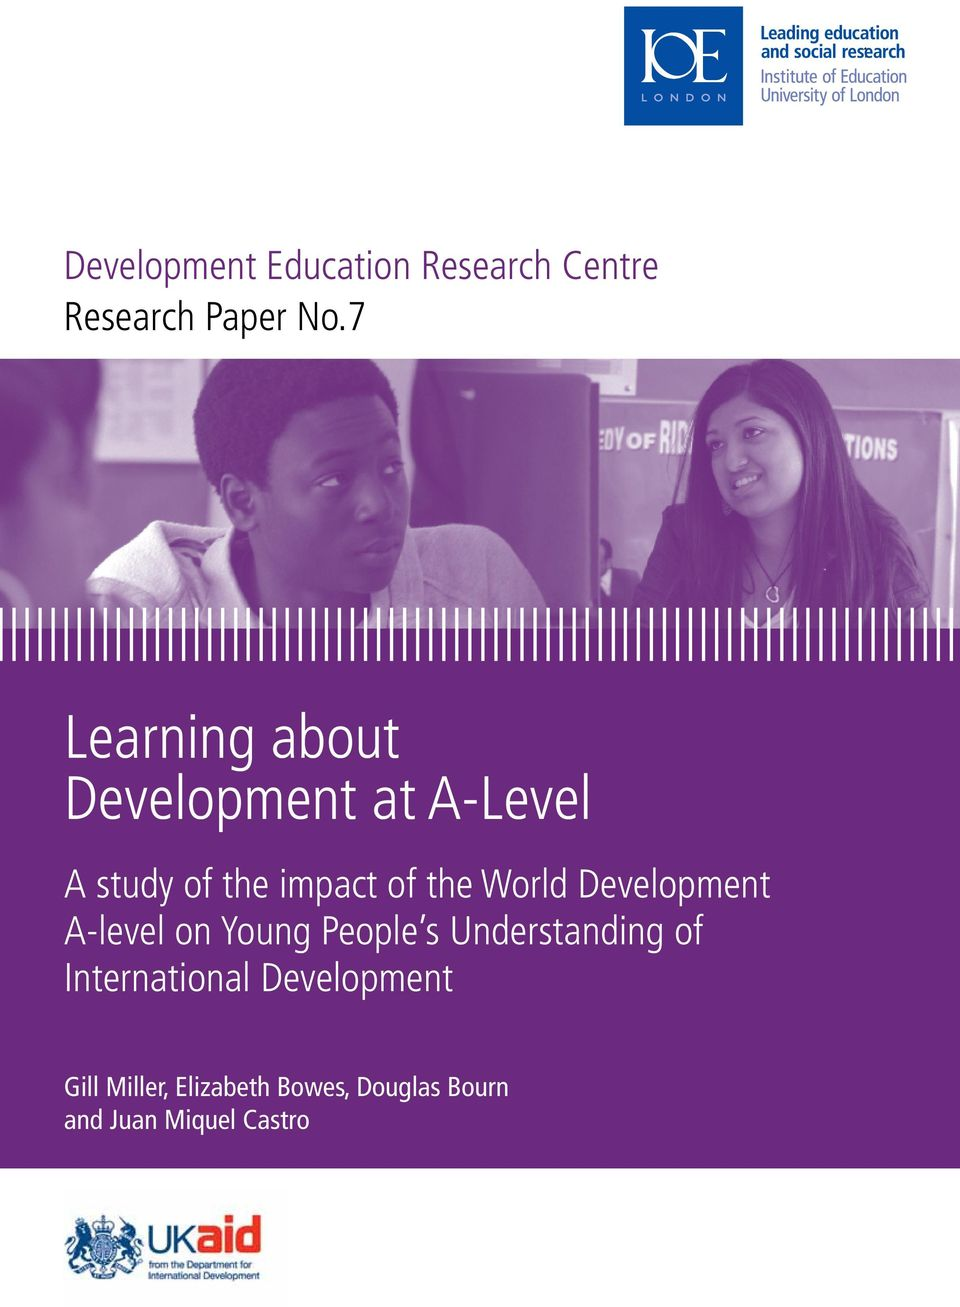 ac.uk www.ioe.ac.uk Learning about Development at A-Level A study of the impact of the World